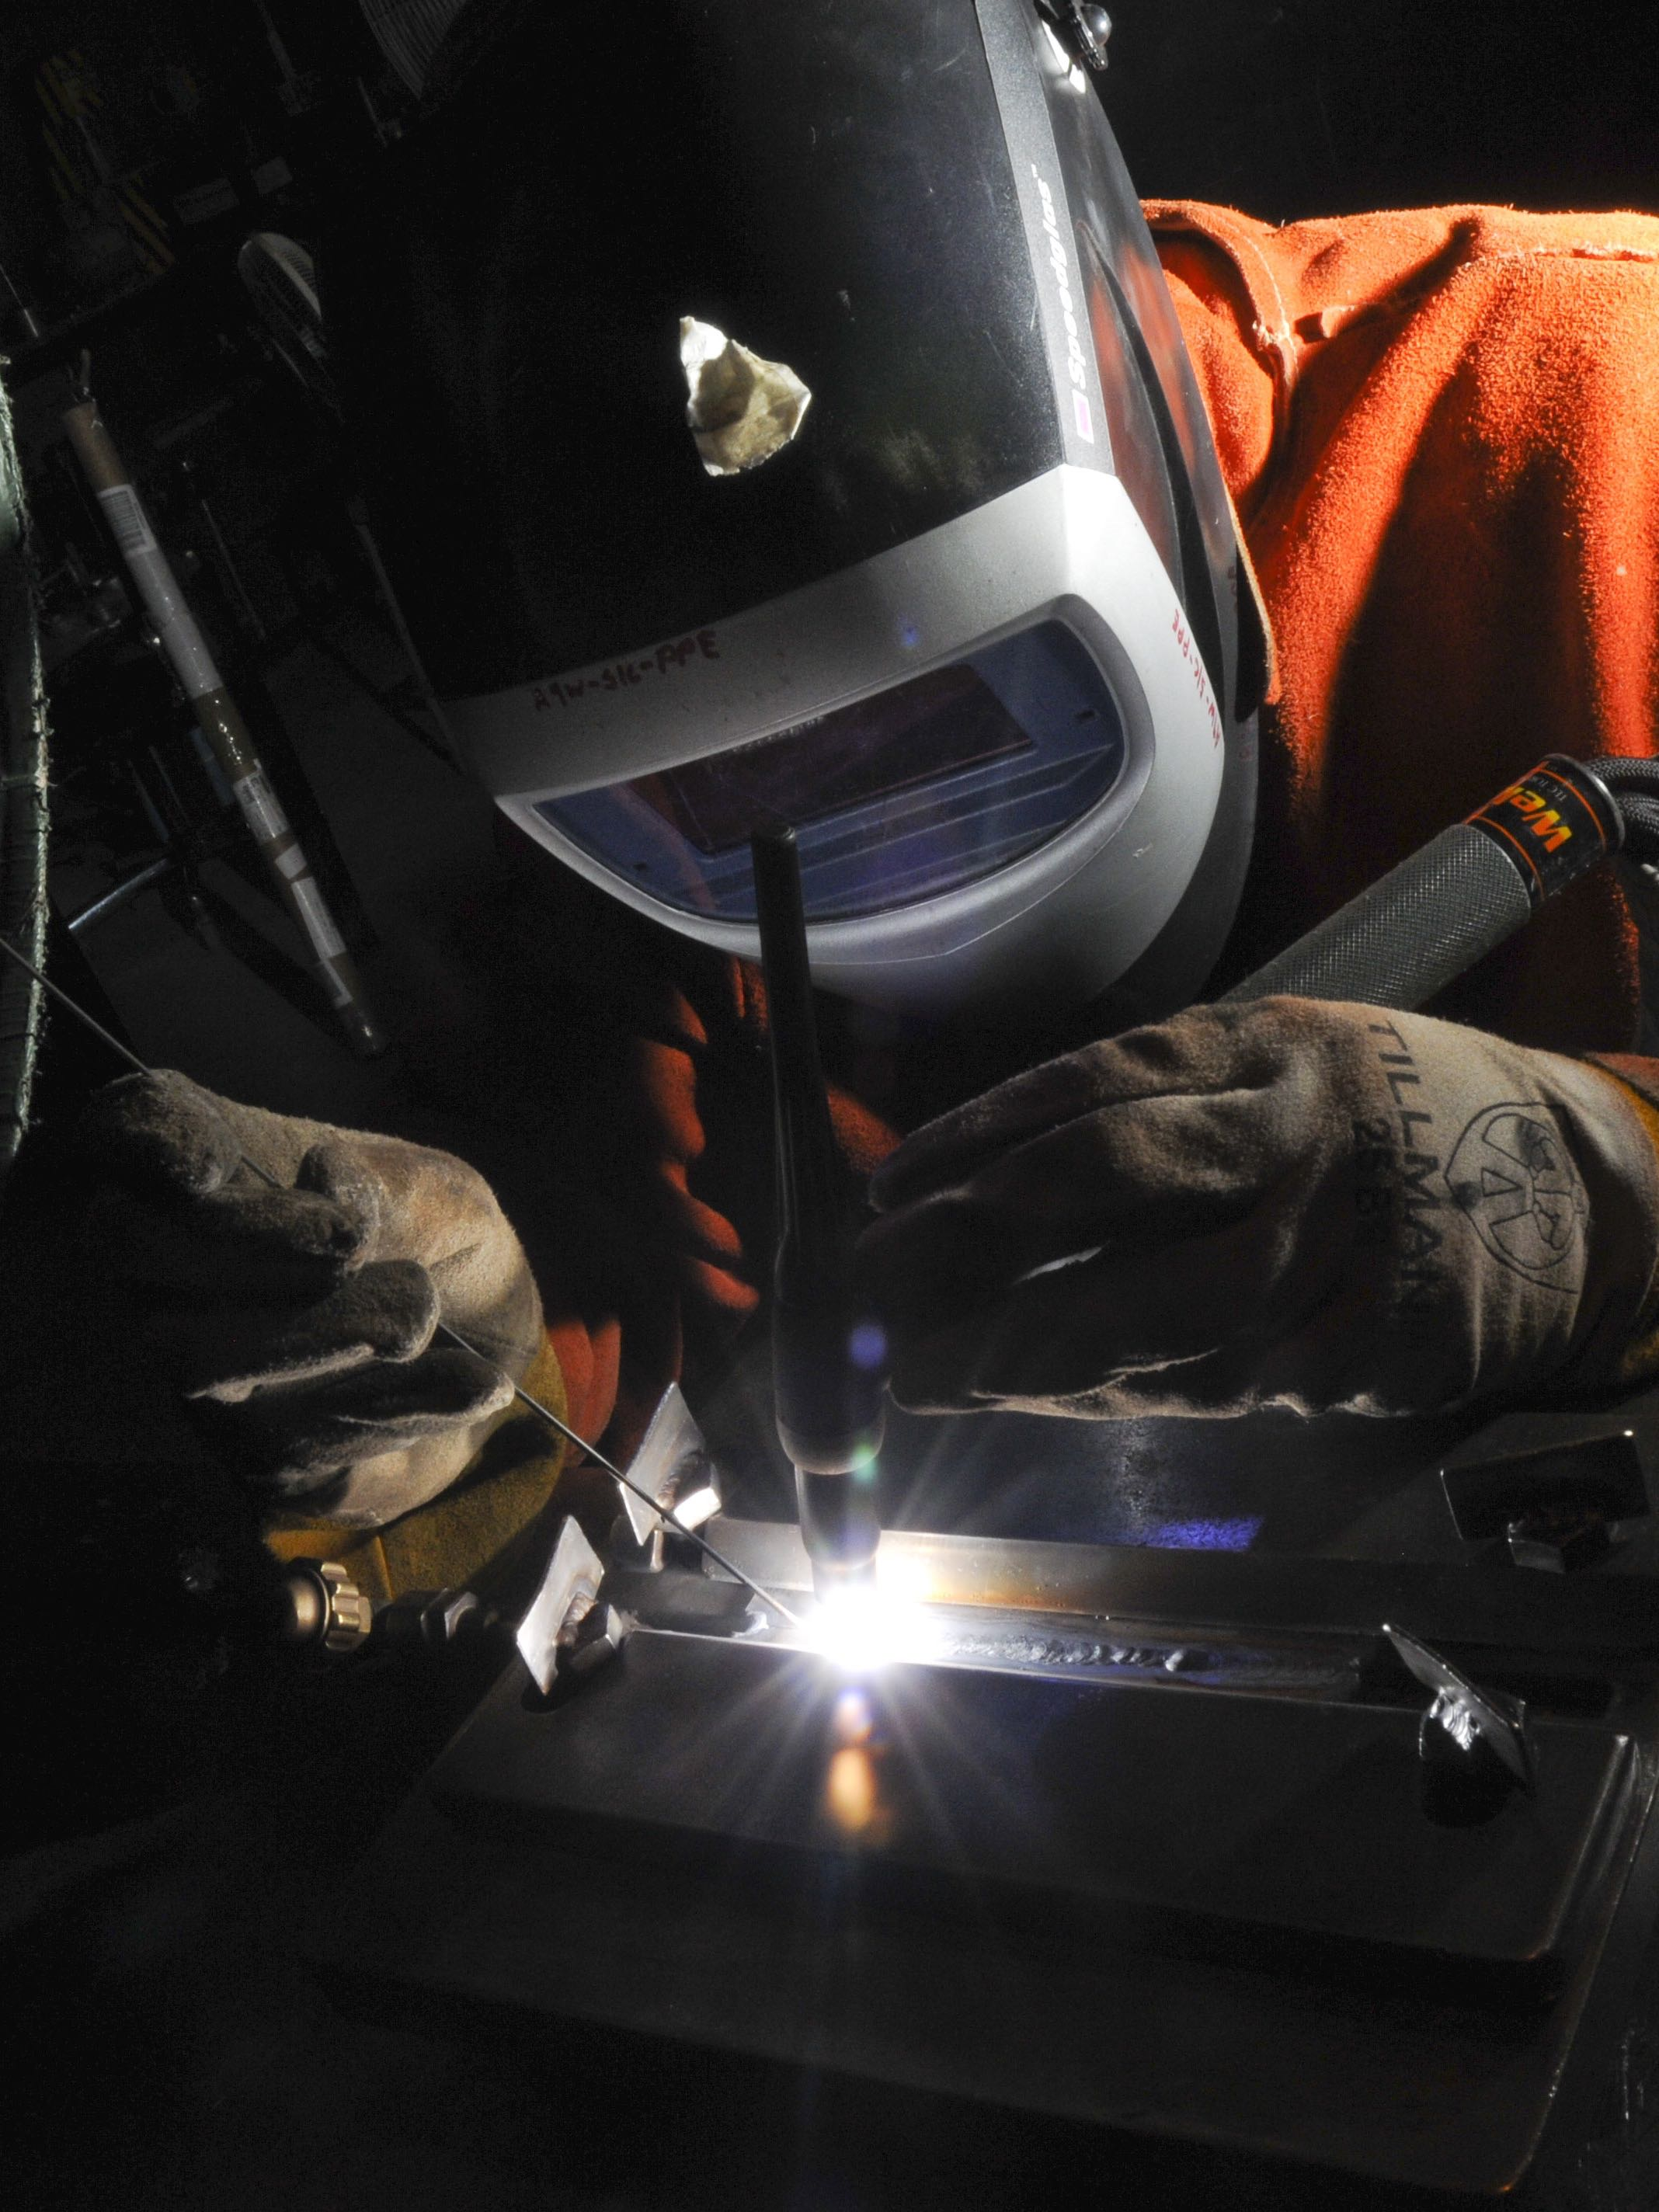 consider government welding jobs while it is not hard to a welding job a private company those who want a high paying welding job great benefits will often that working